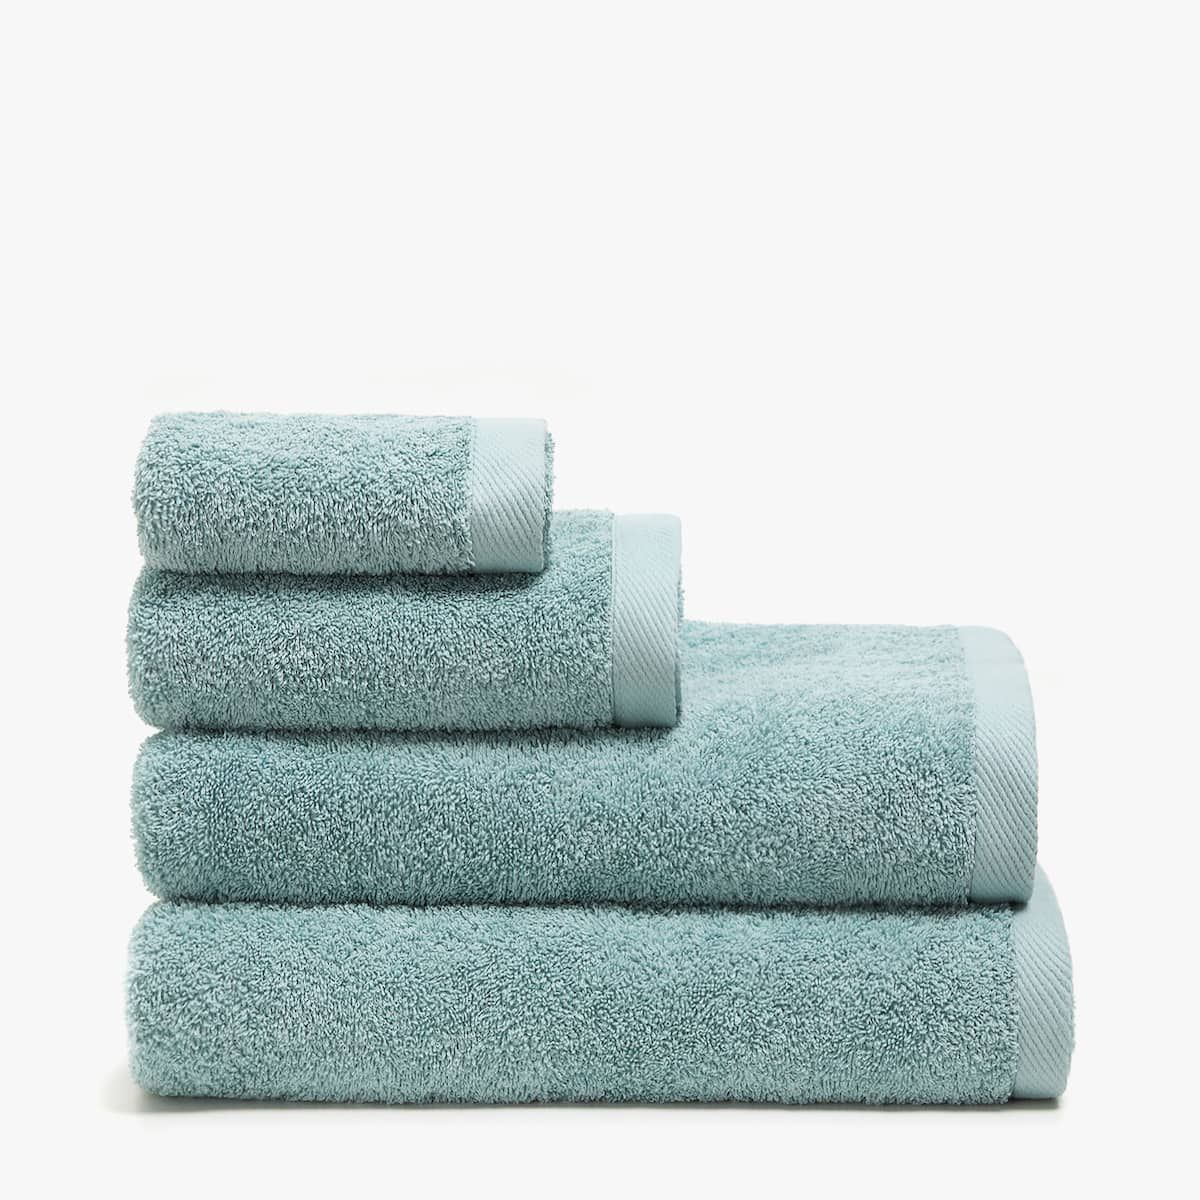 Image Of The Product Basic Towel (With Images)